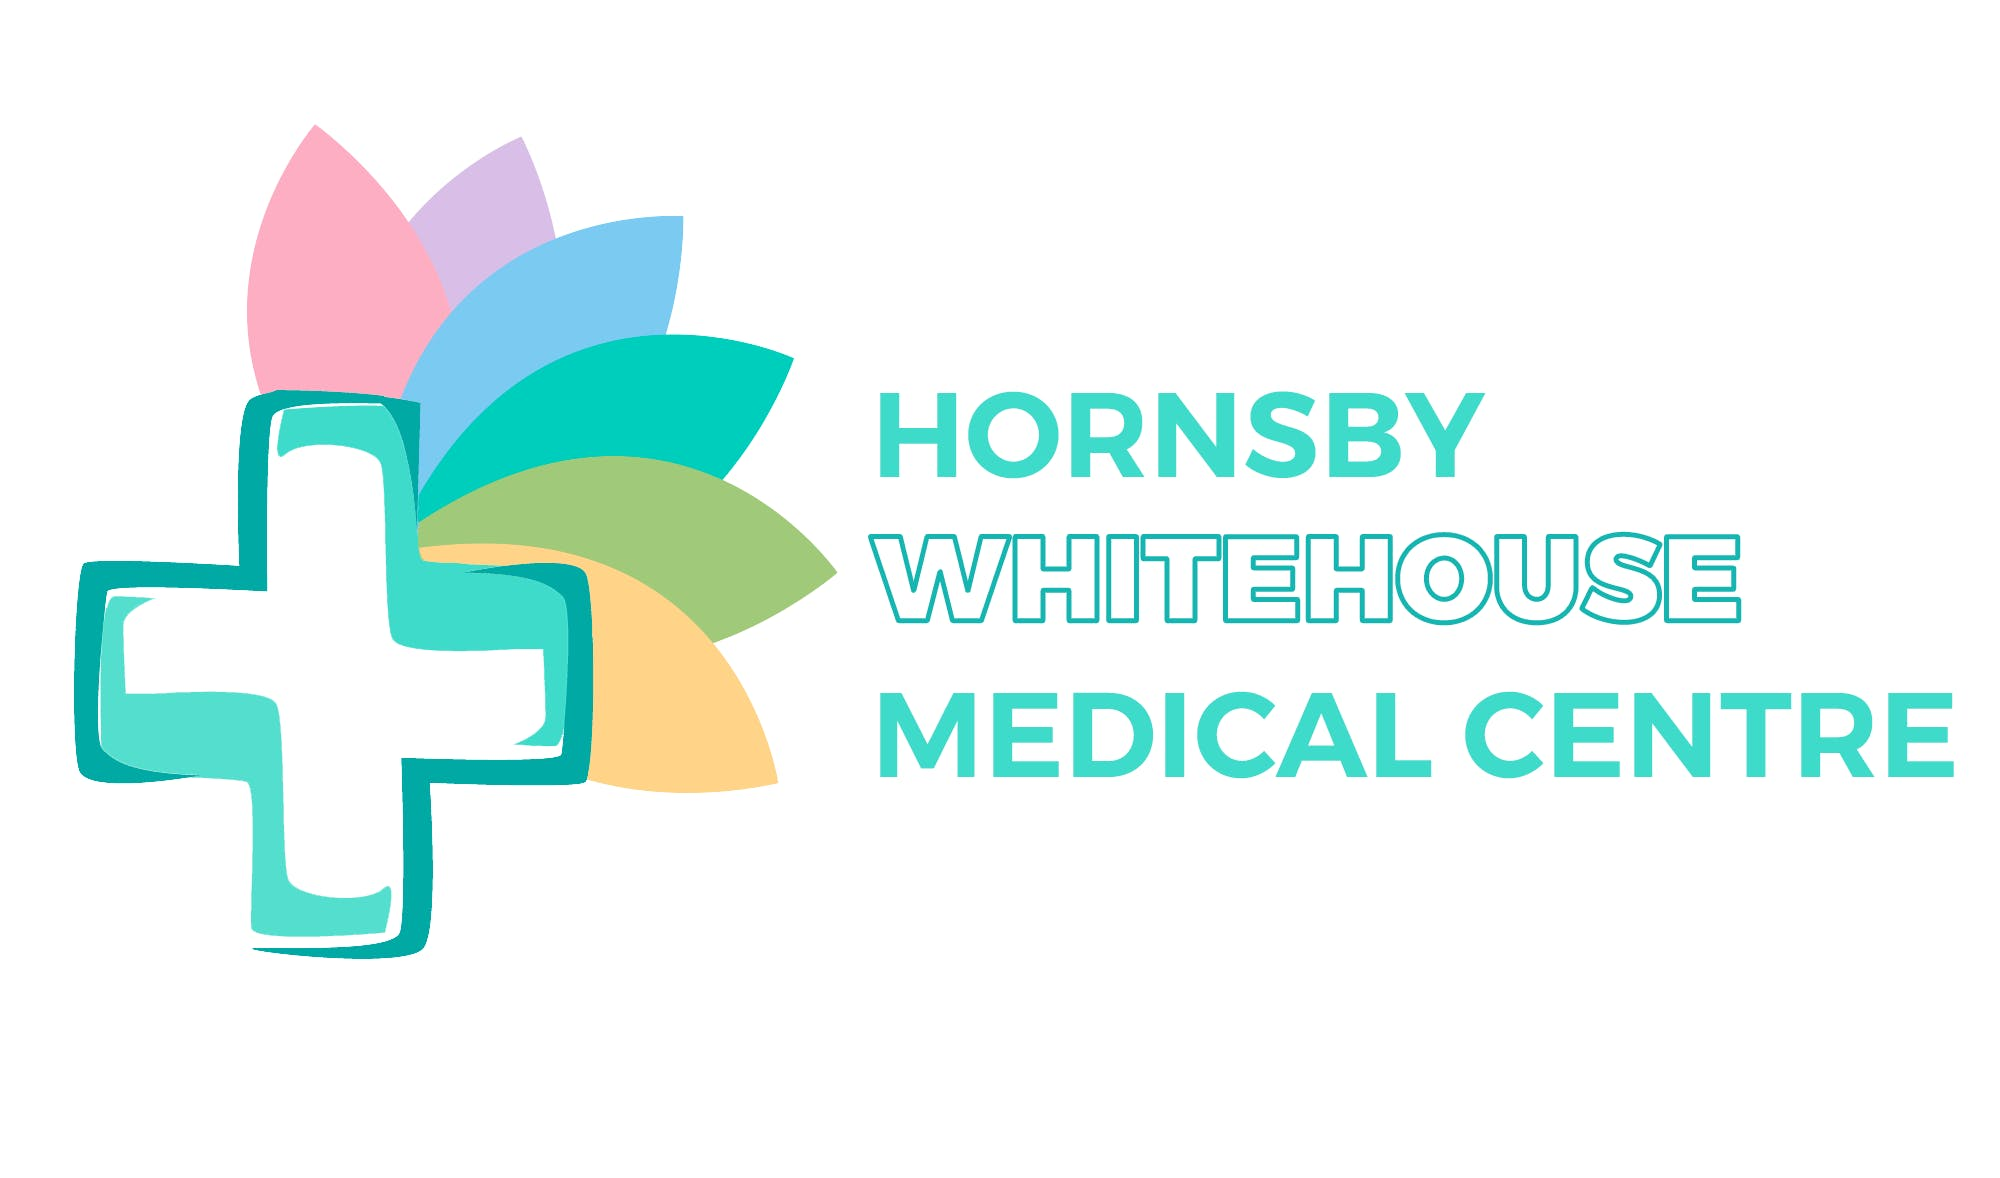 Hornsby Whitehouse Medical Centre Logo